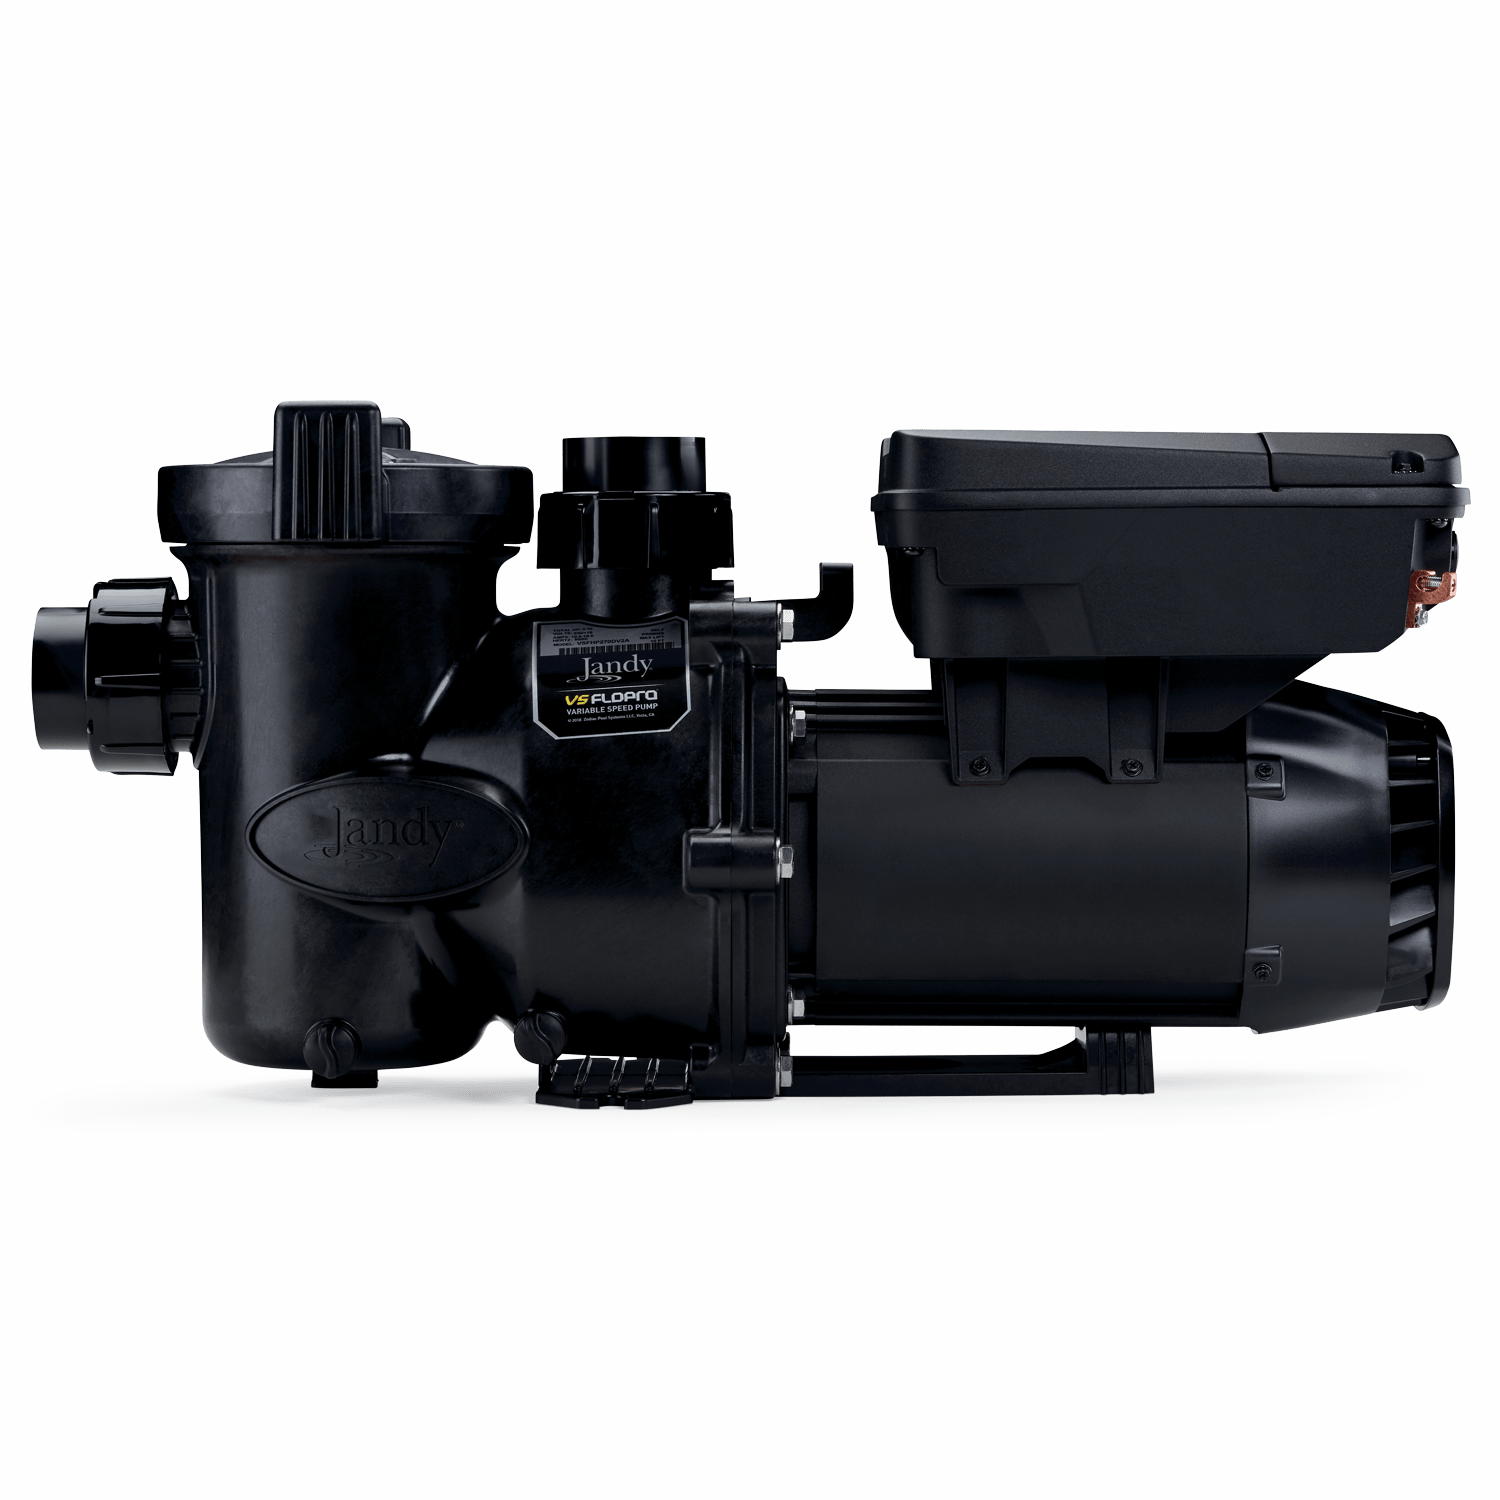 Jandy VS FloPro 1.85 HP Pump side product view